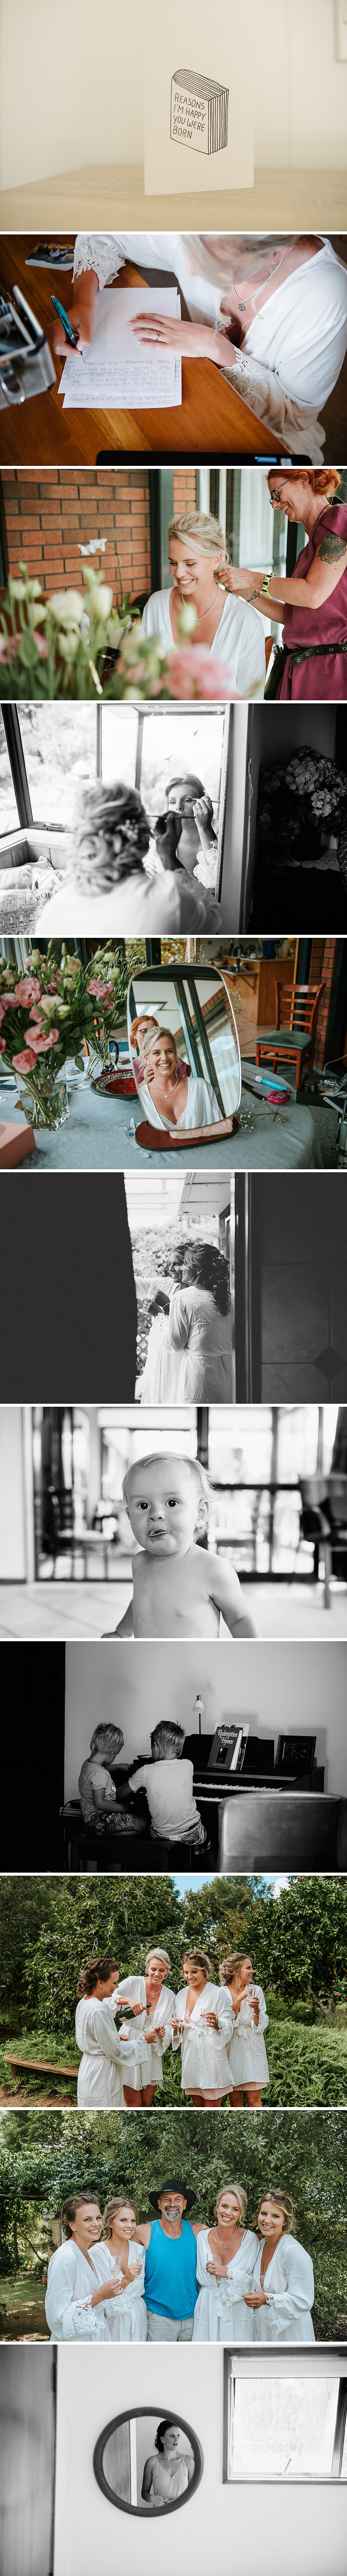 New Zealand Wedding, Northland NZ. Photographer Jess Burges